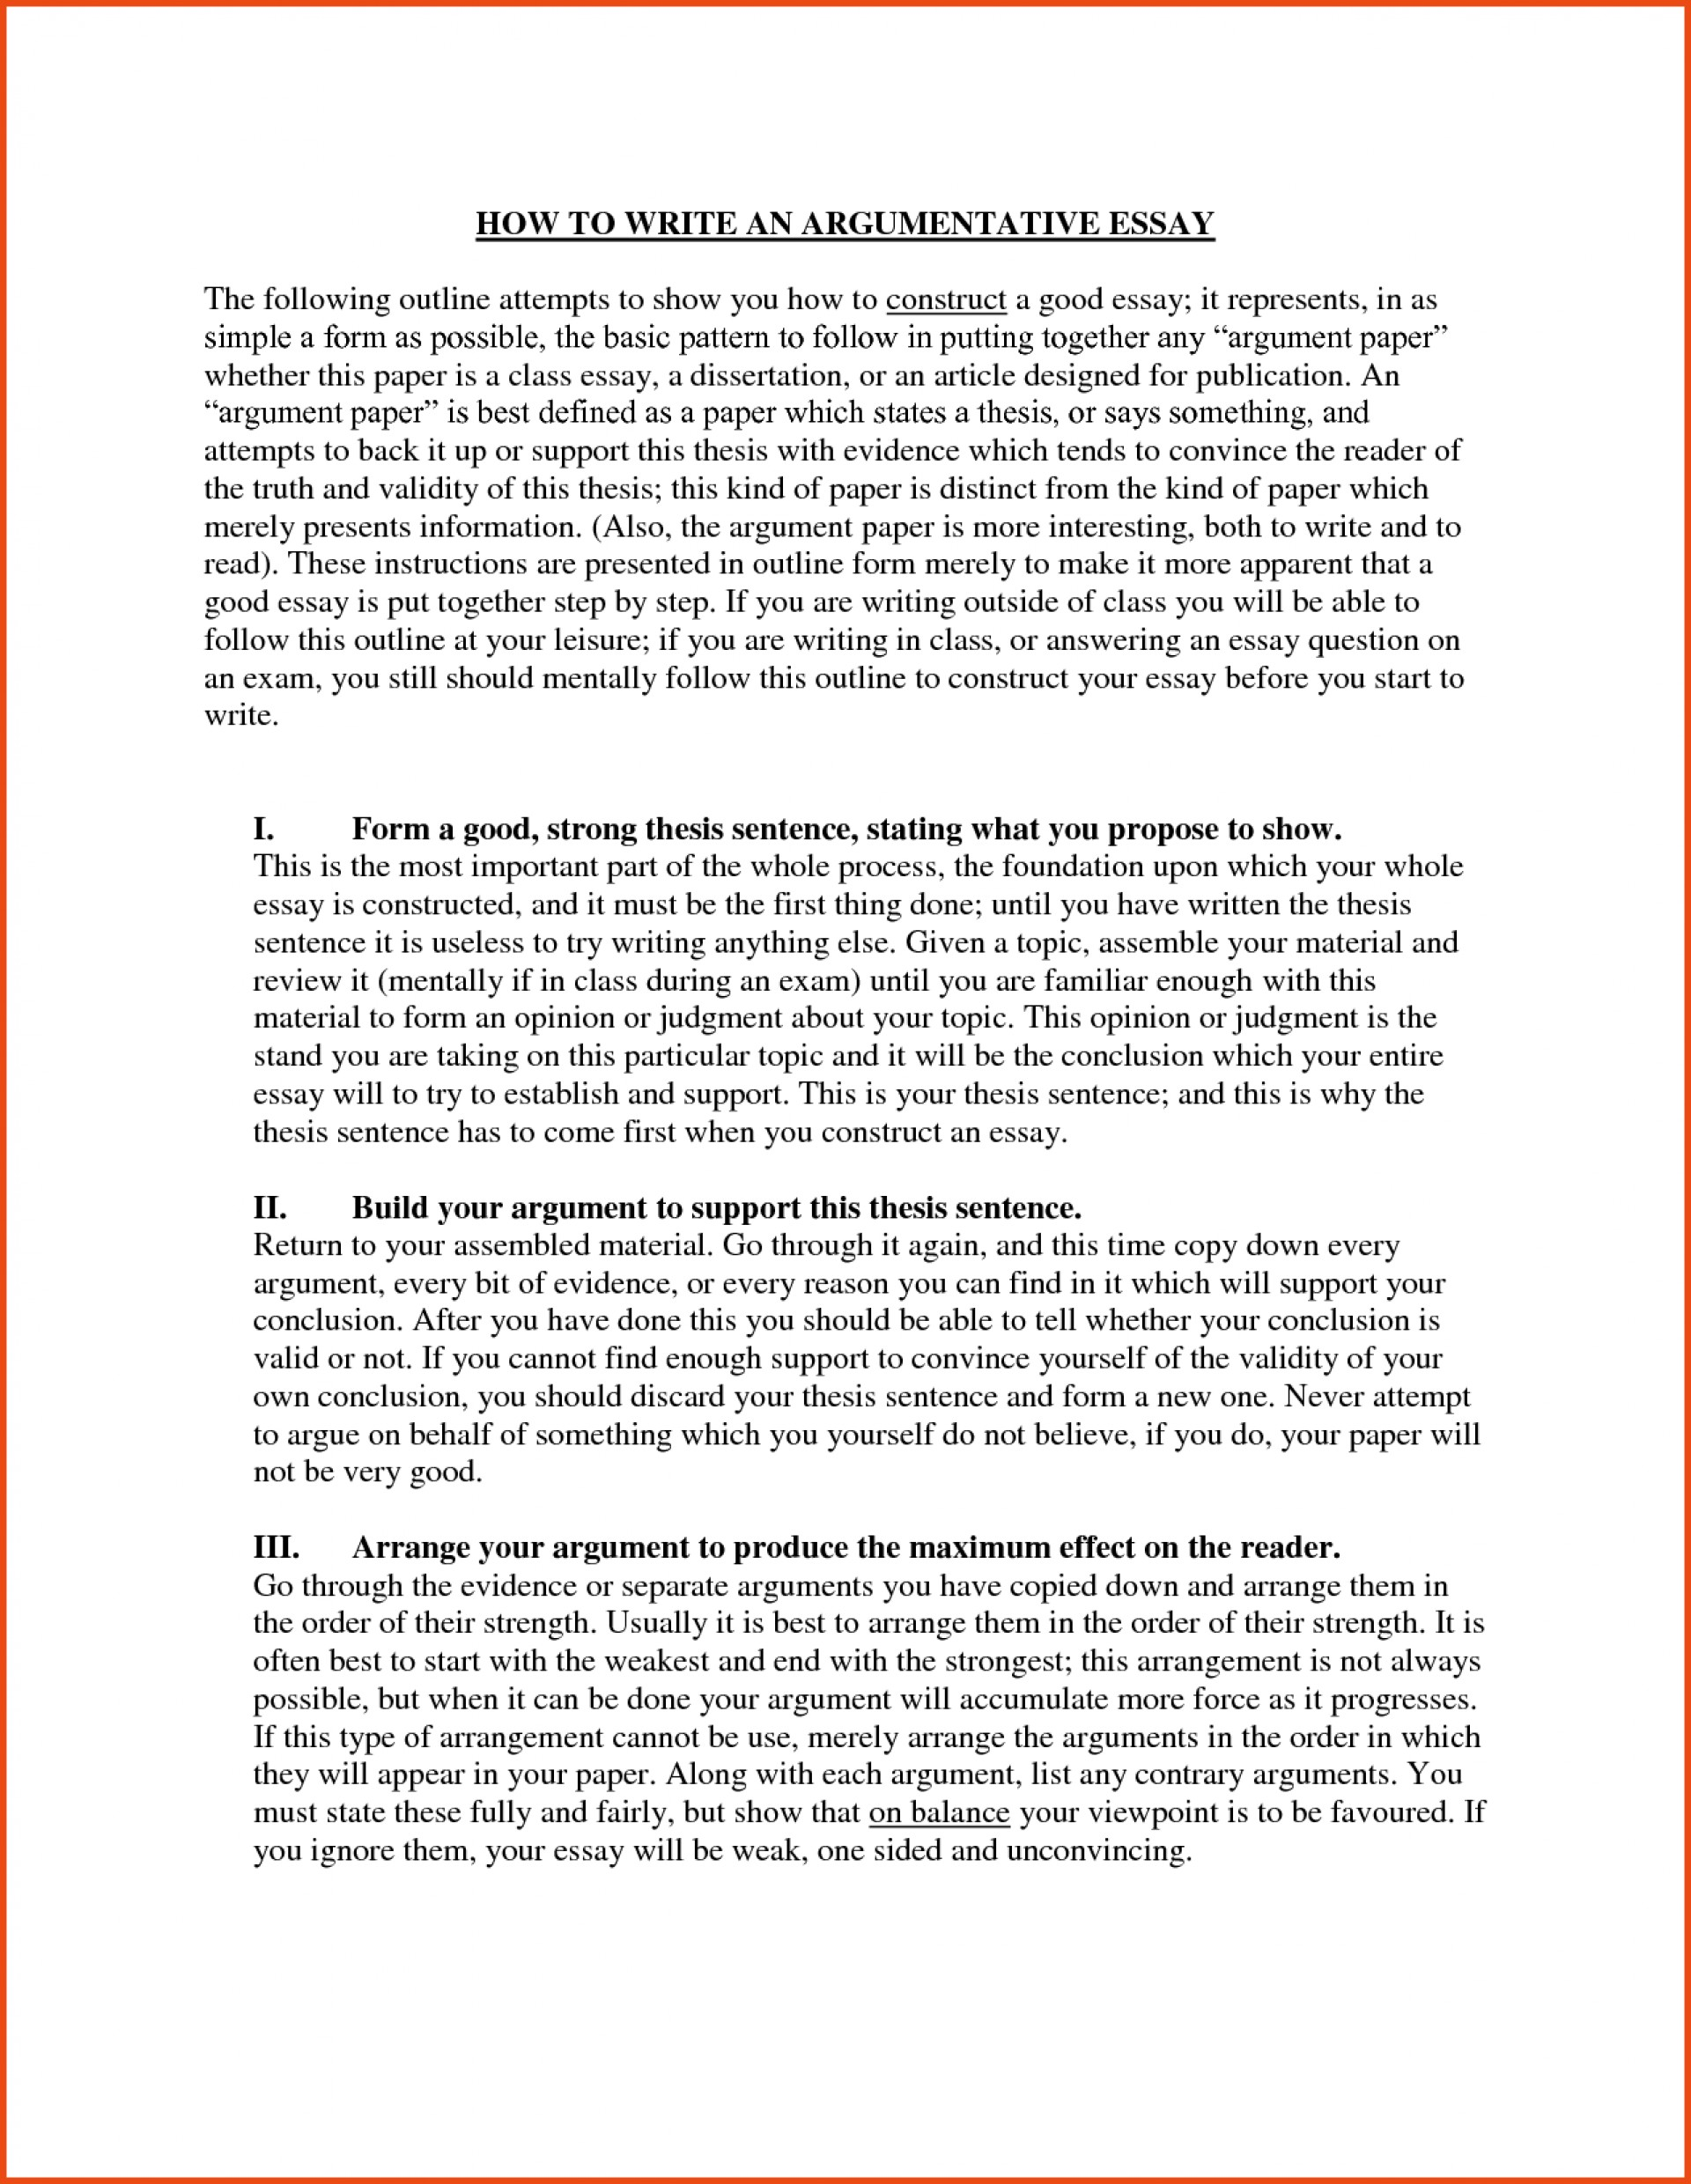 007 Brilliant Ideas Of Good Ways To Start Any About Yourself Dissertation Nice How Photo Breathtaking An Essay Application Write Argumentative Step By Pdf Conclusion Paragraph 1920